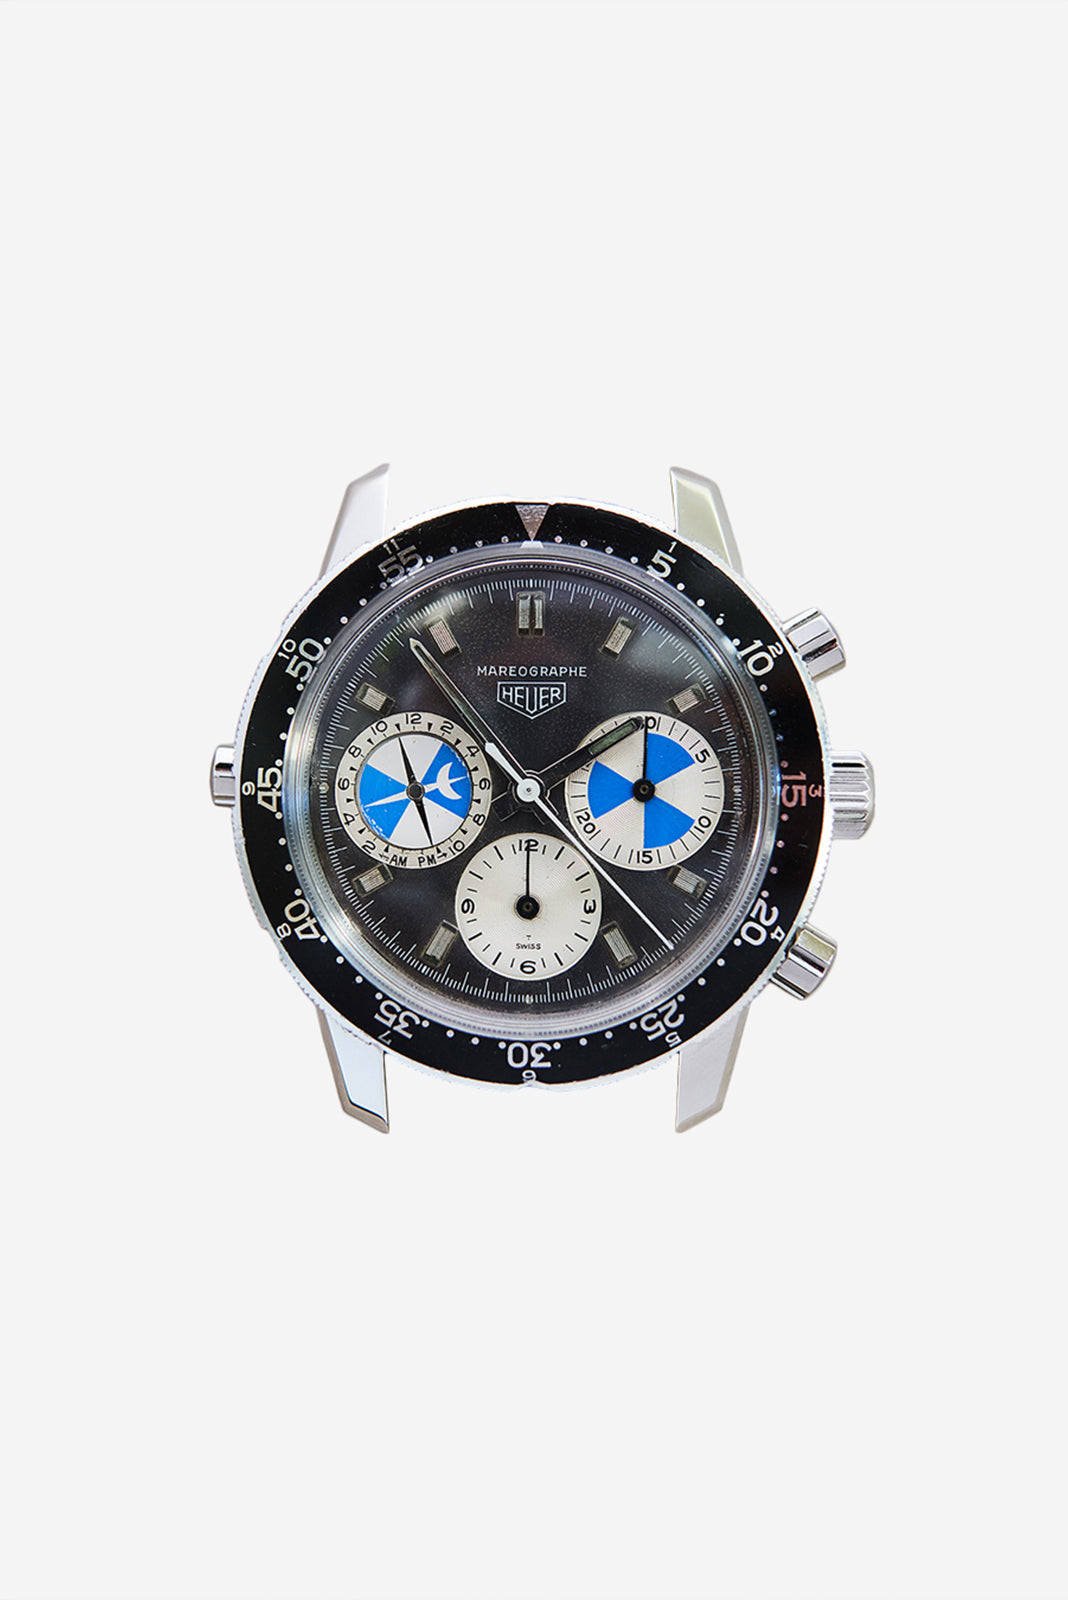 Heuer Mareograph Watch in The Complications Lost to Time for A Collected Man London